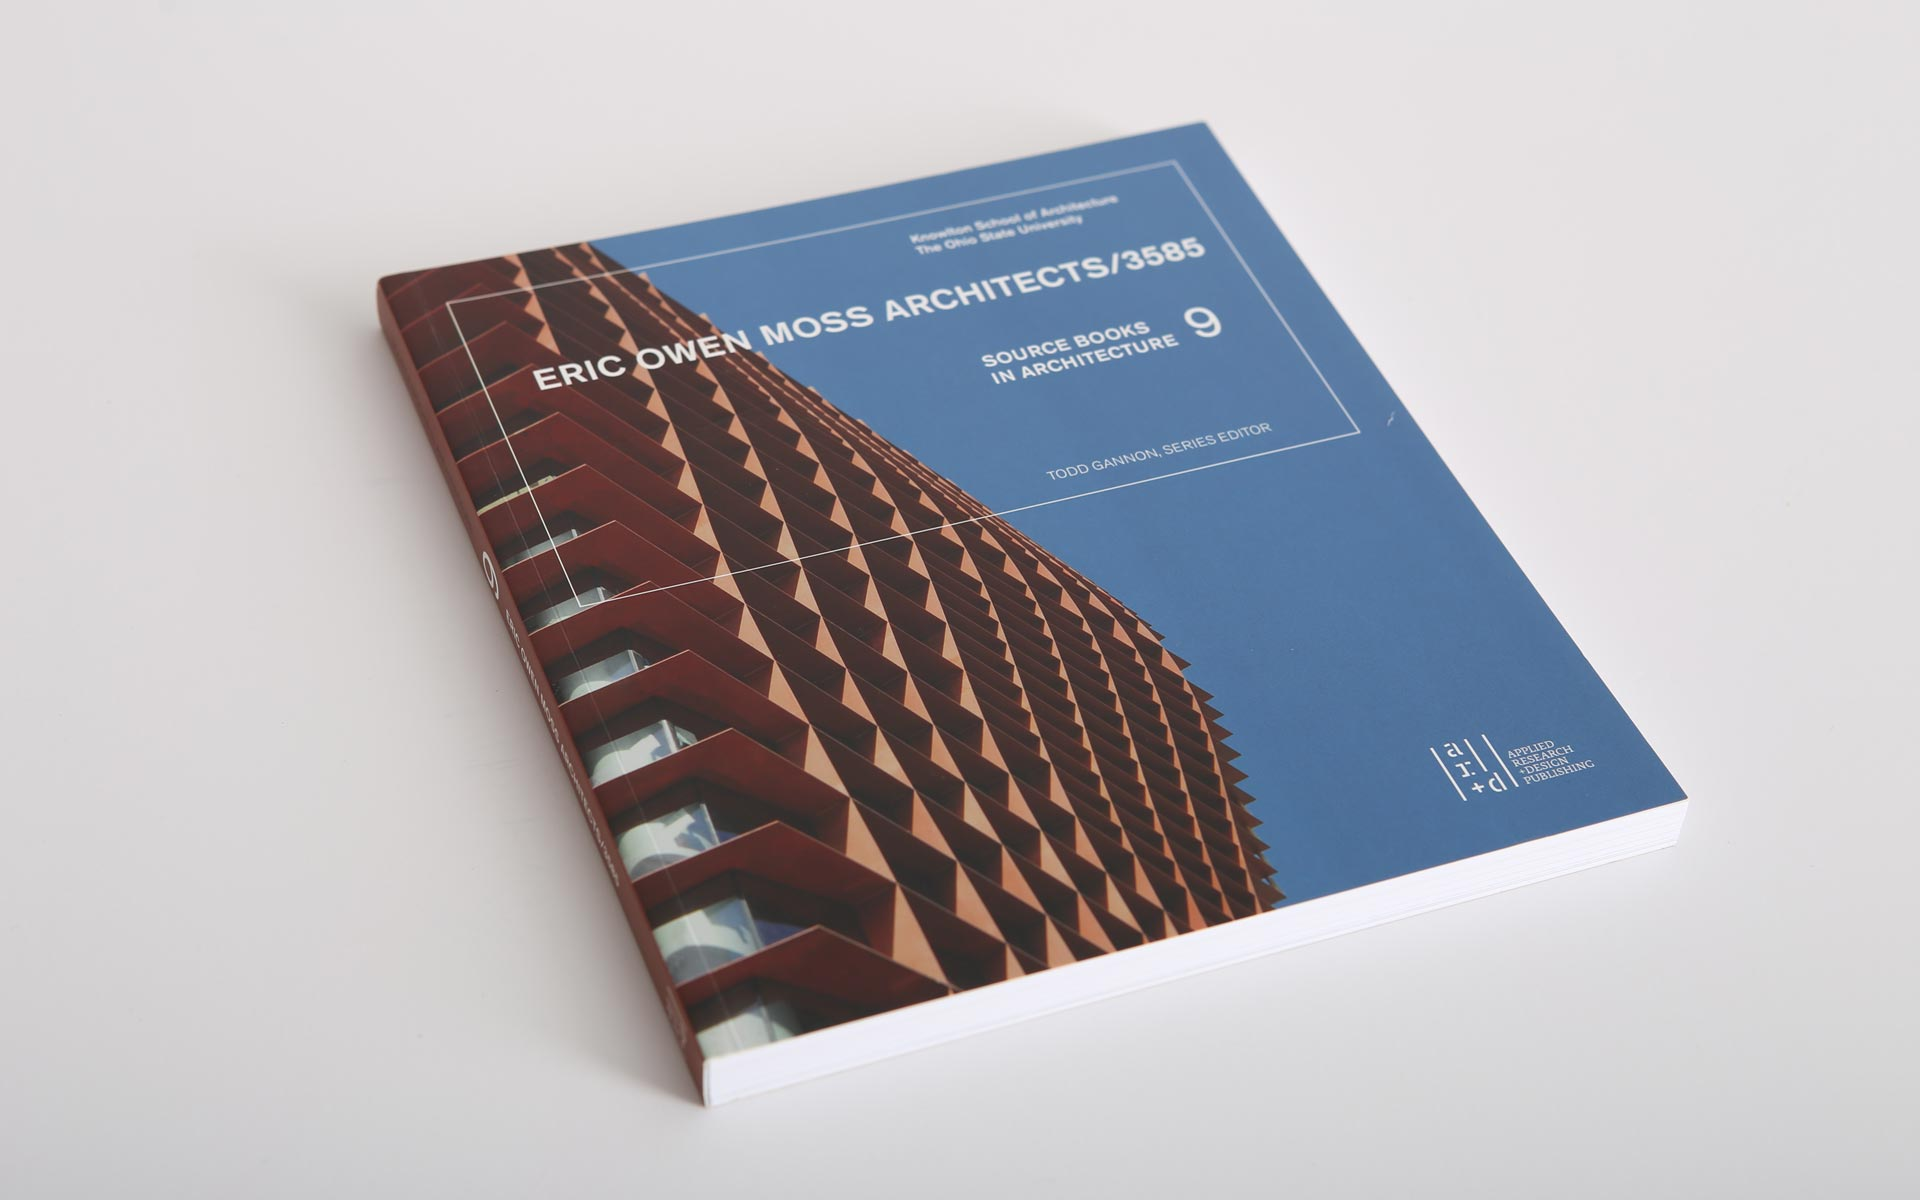 University of Ohio, Source Books in Architecture 9